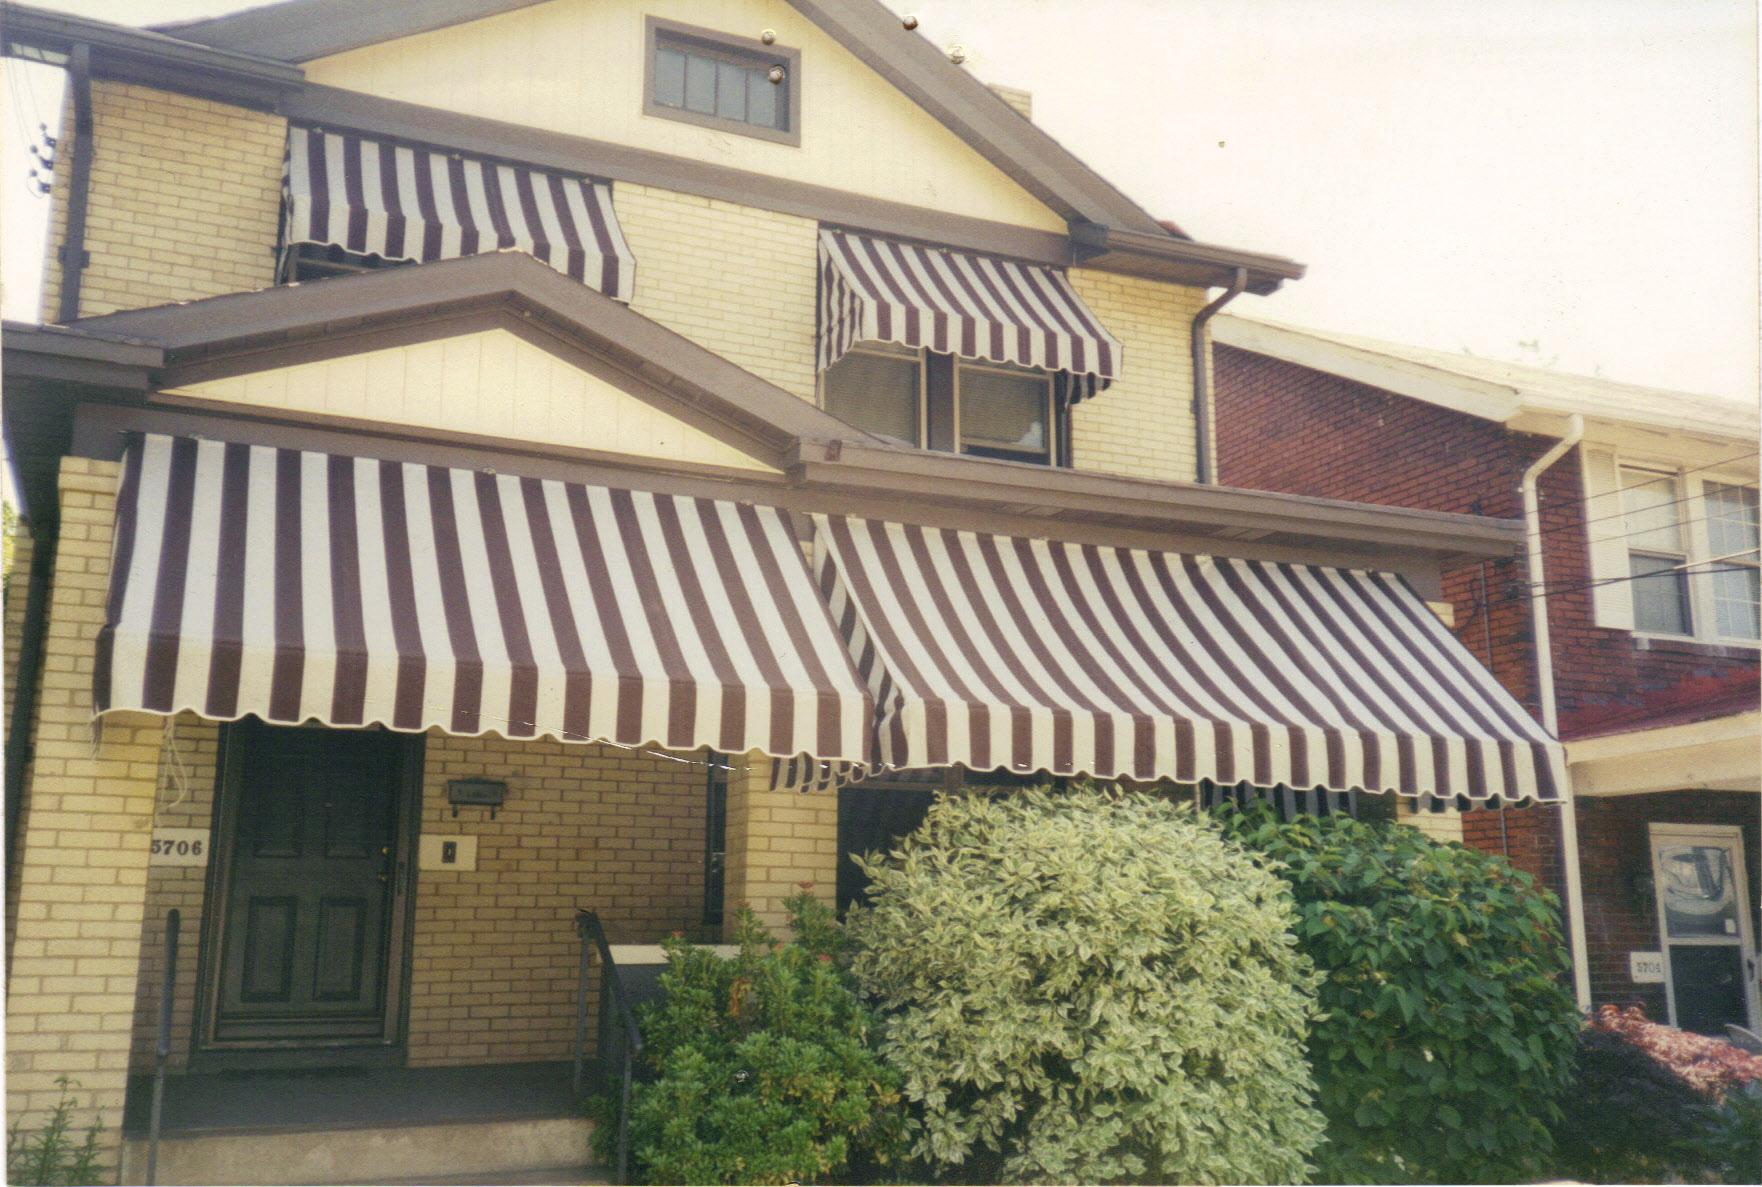 Gallery Rothman Awning